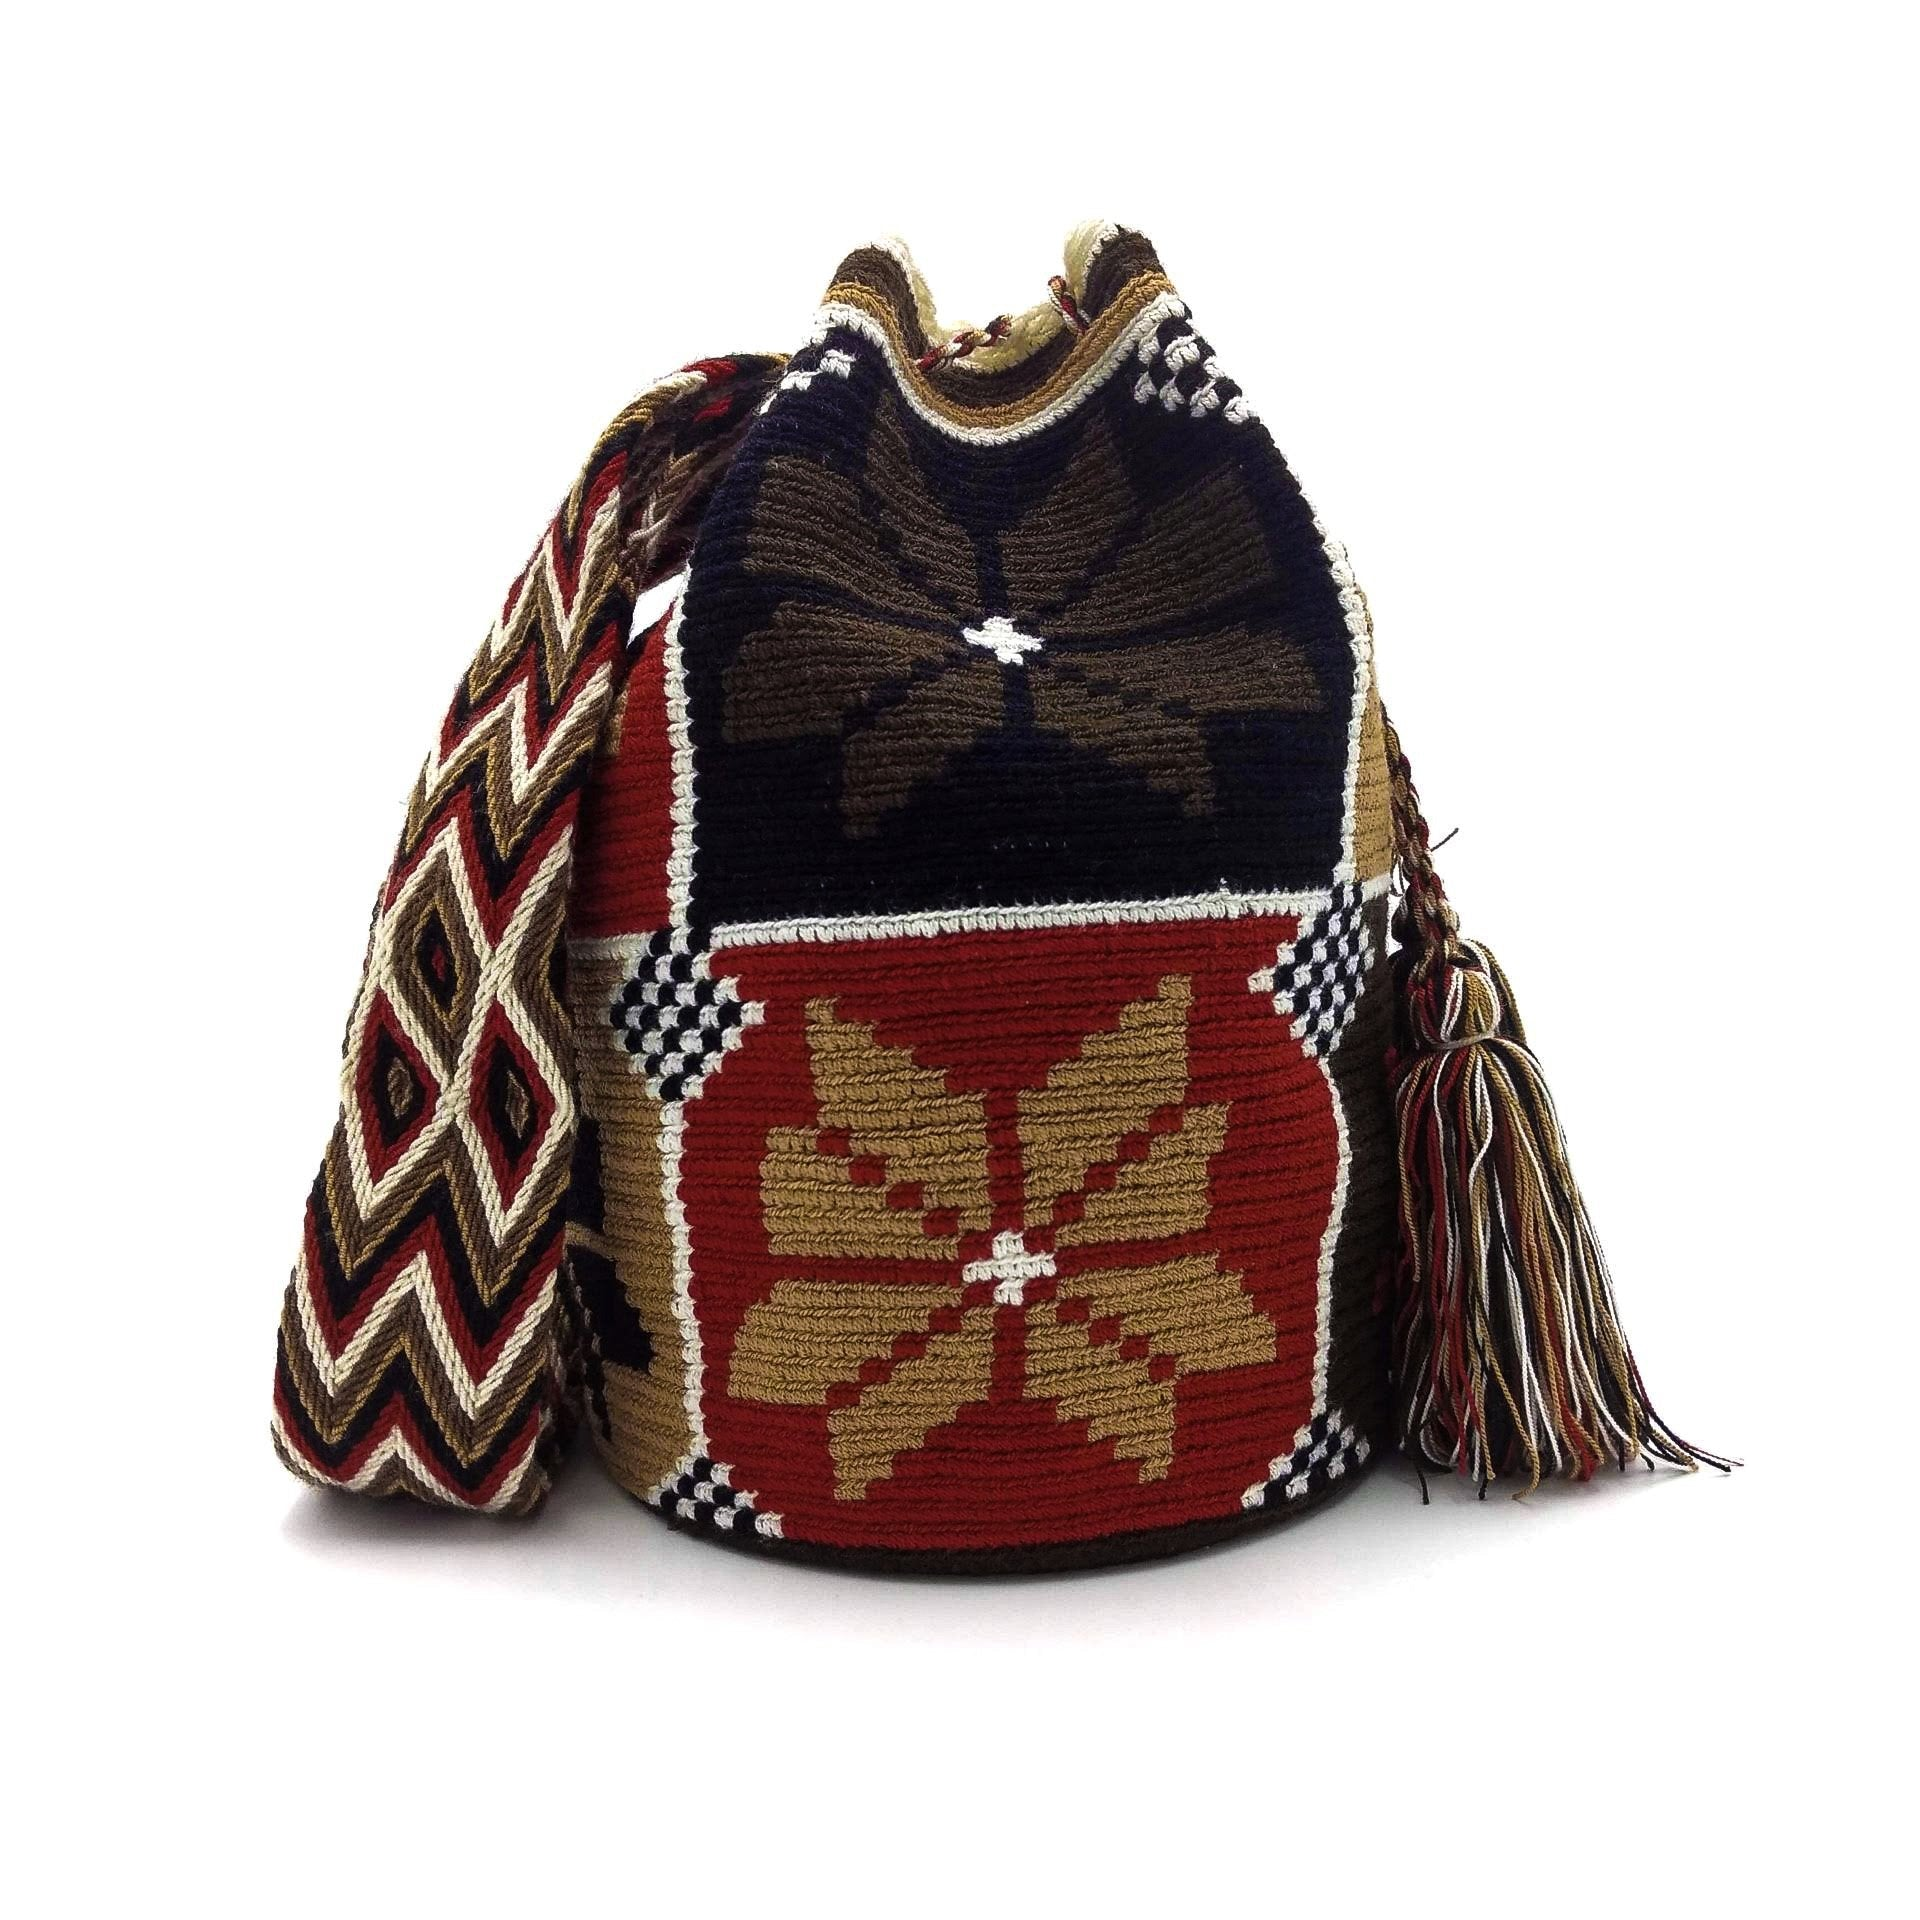 Front view of Eight-Petal Flower Wayuu Mochila Bag with beautiful pattern in the following colors: Light-brown, Ivory, Brown, Red, and Black.